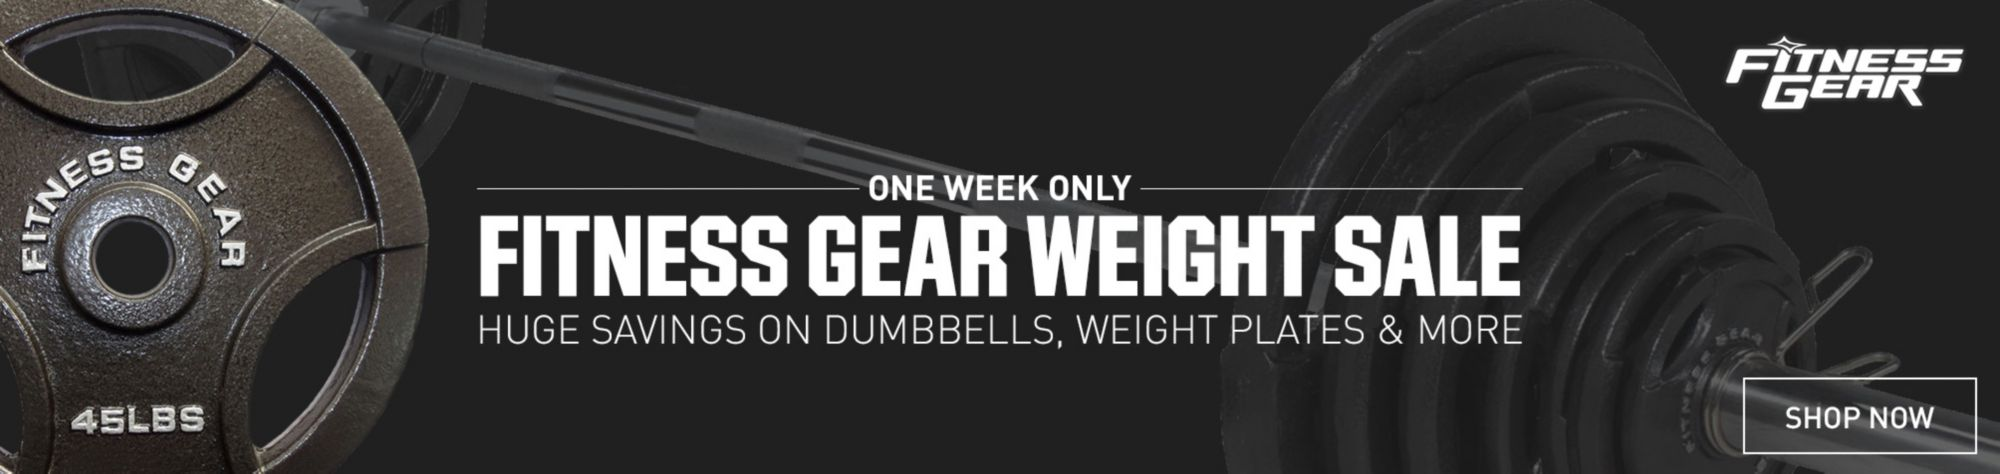 Fitness Gear Weight Sale